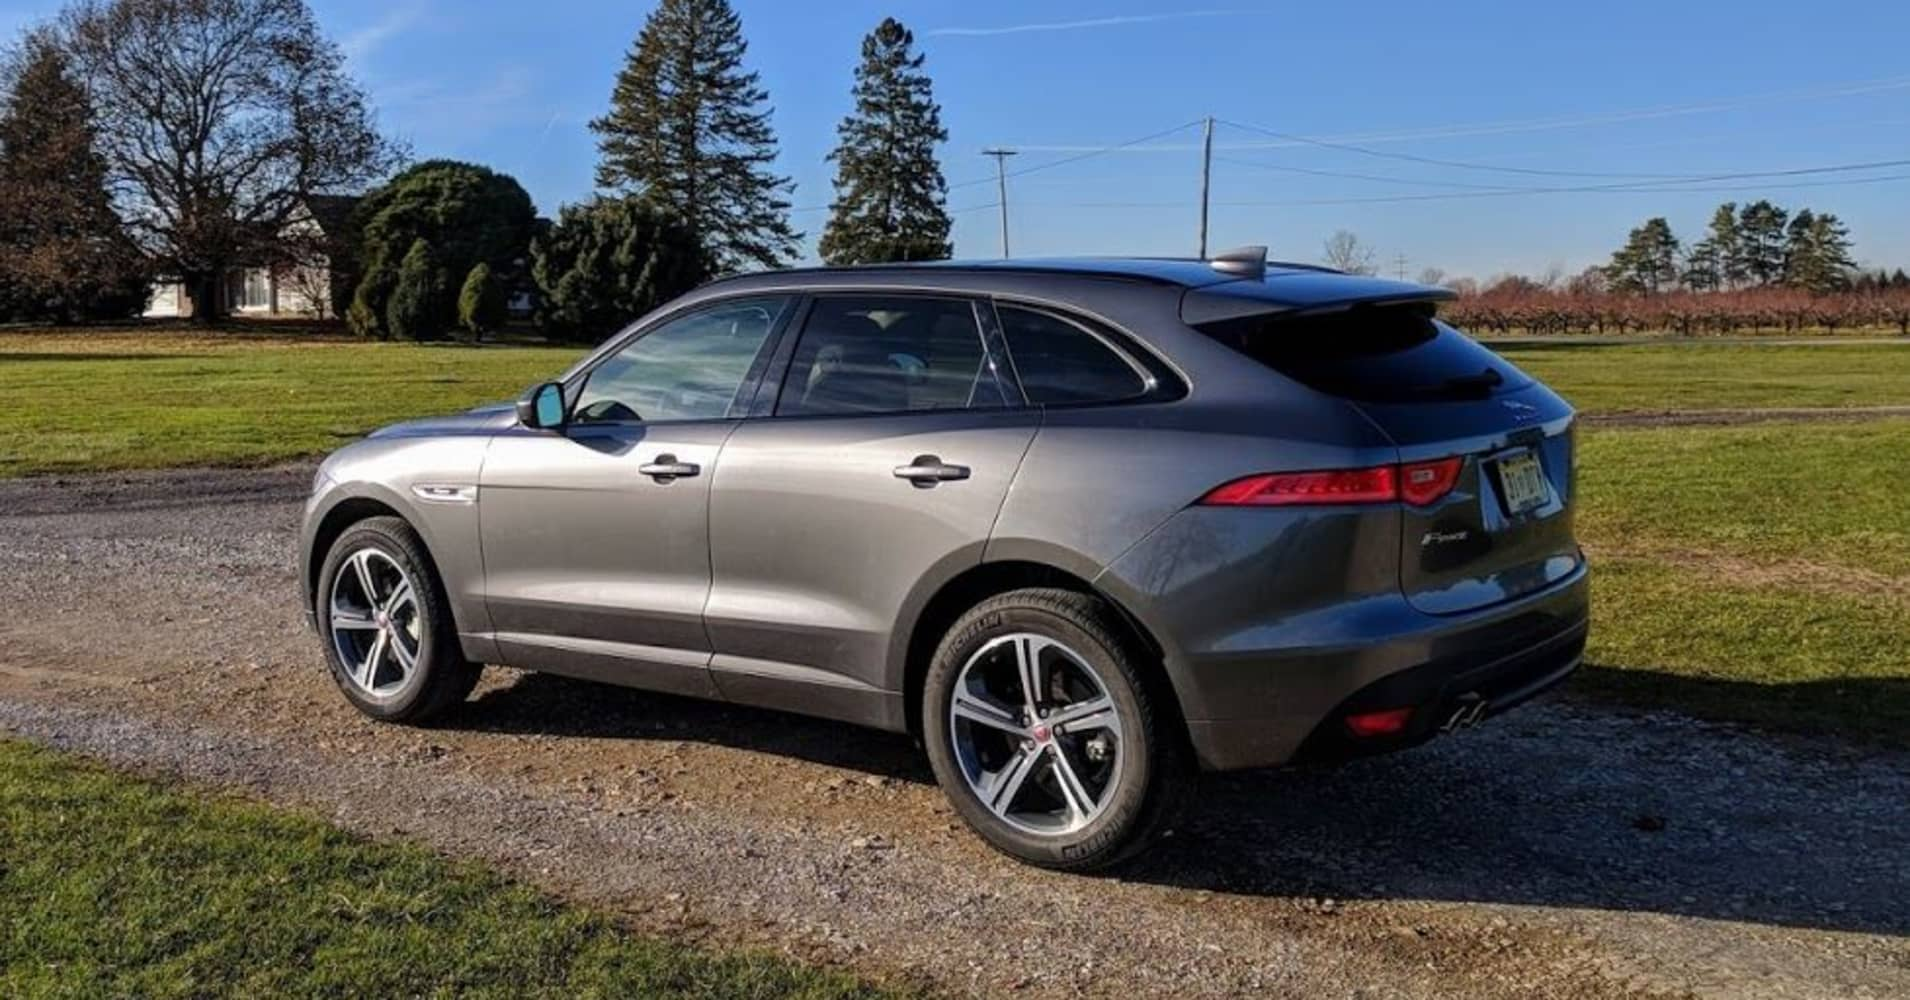 2018 jaguar f pace 20d r sport review. Black Bedroom Furniture Sets. Home Design Ideas